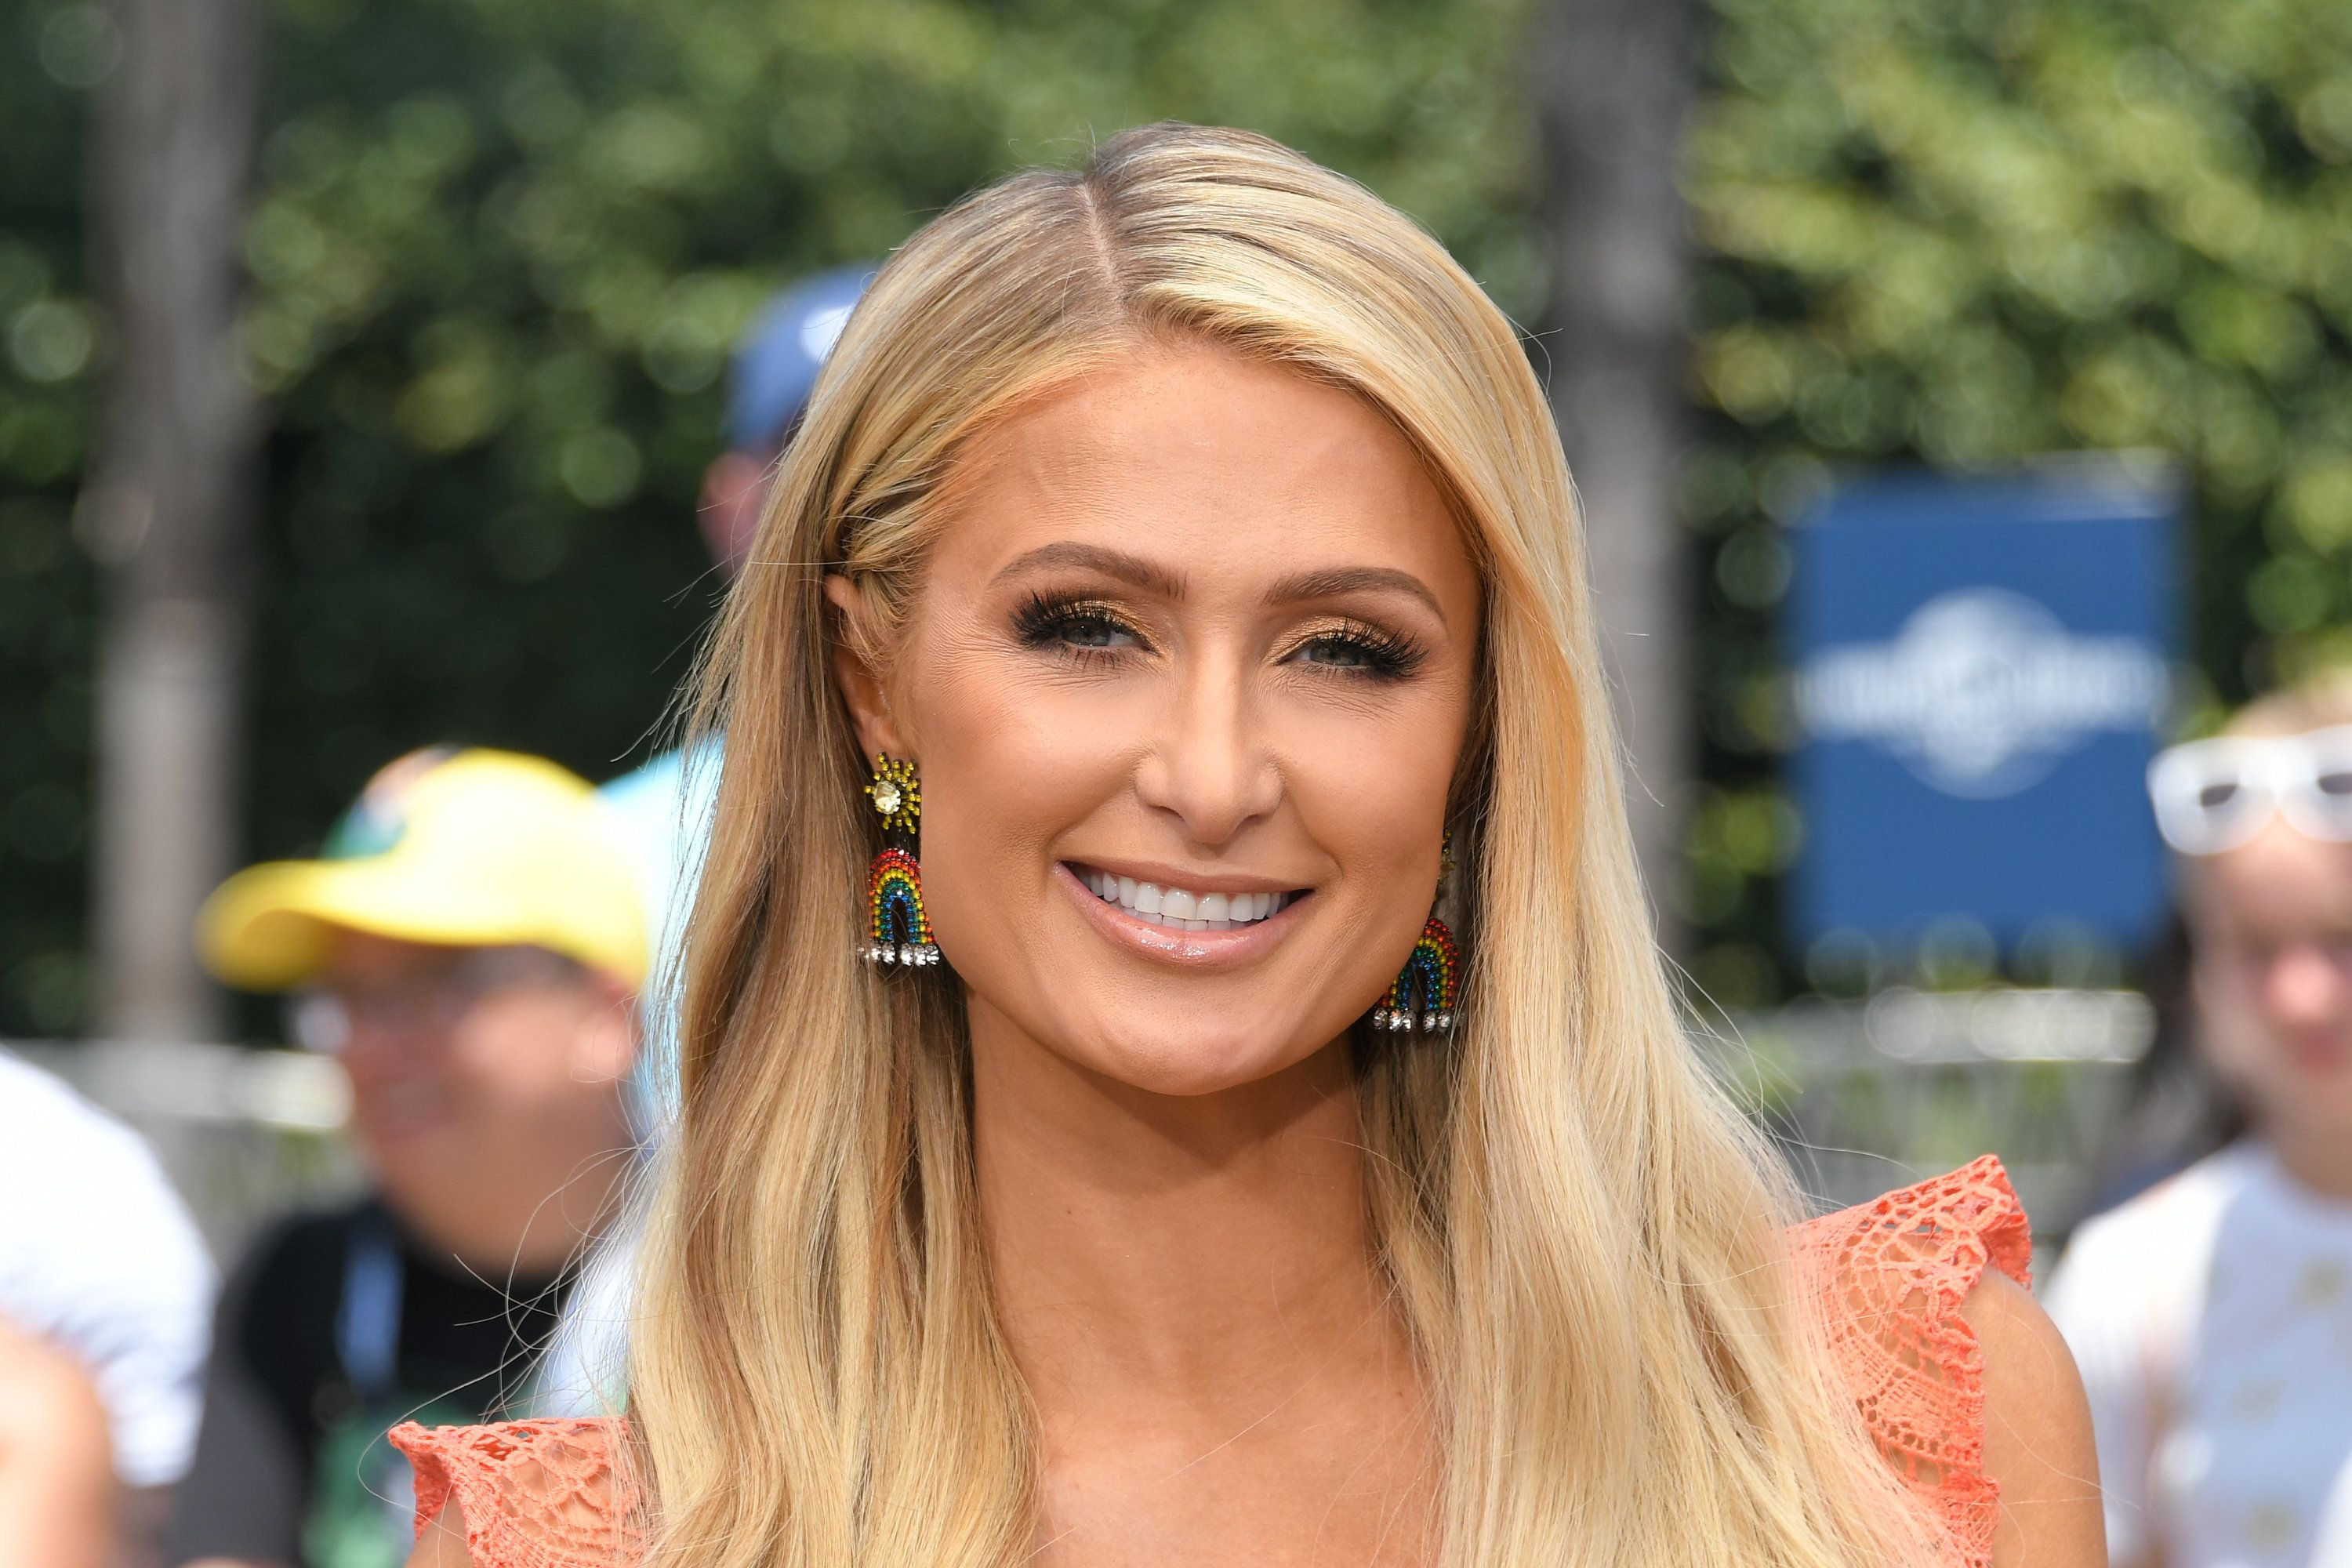 UNIVERSAL CITY, CA - JUNE 28:  Paris Hilton visits 'Extra' at Universal Studios Hollywood on June 28, 2018 in Universal City, California.  (Photo by Noel Vasquez/Getty Images)